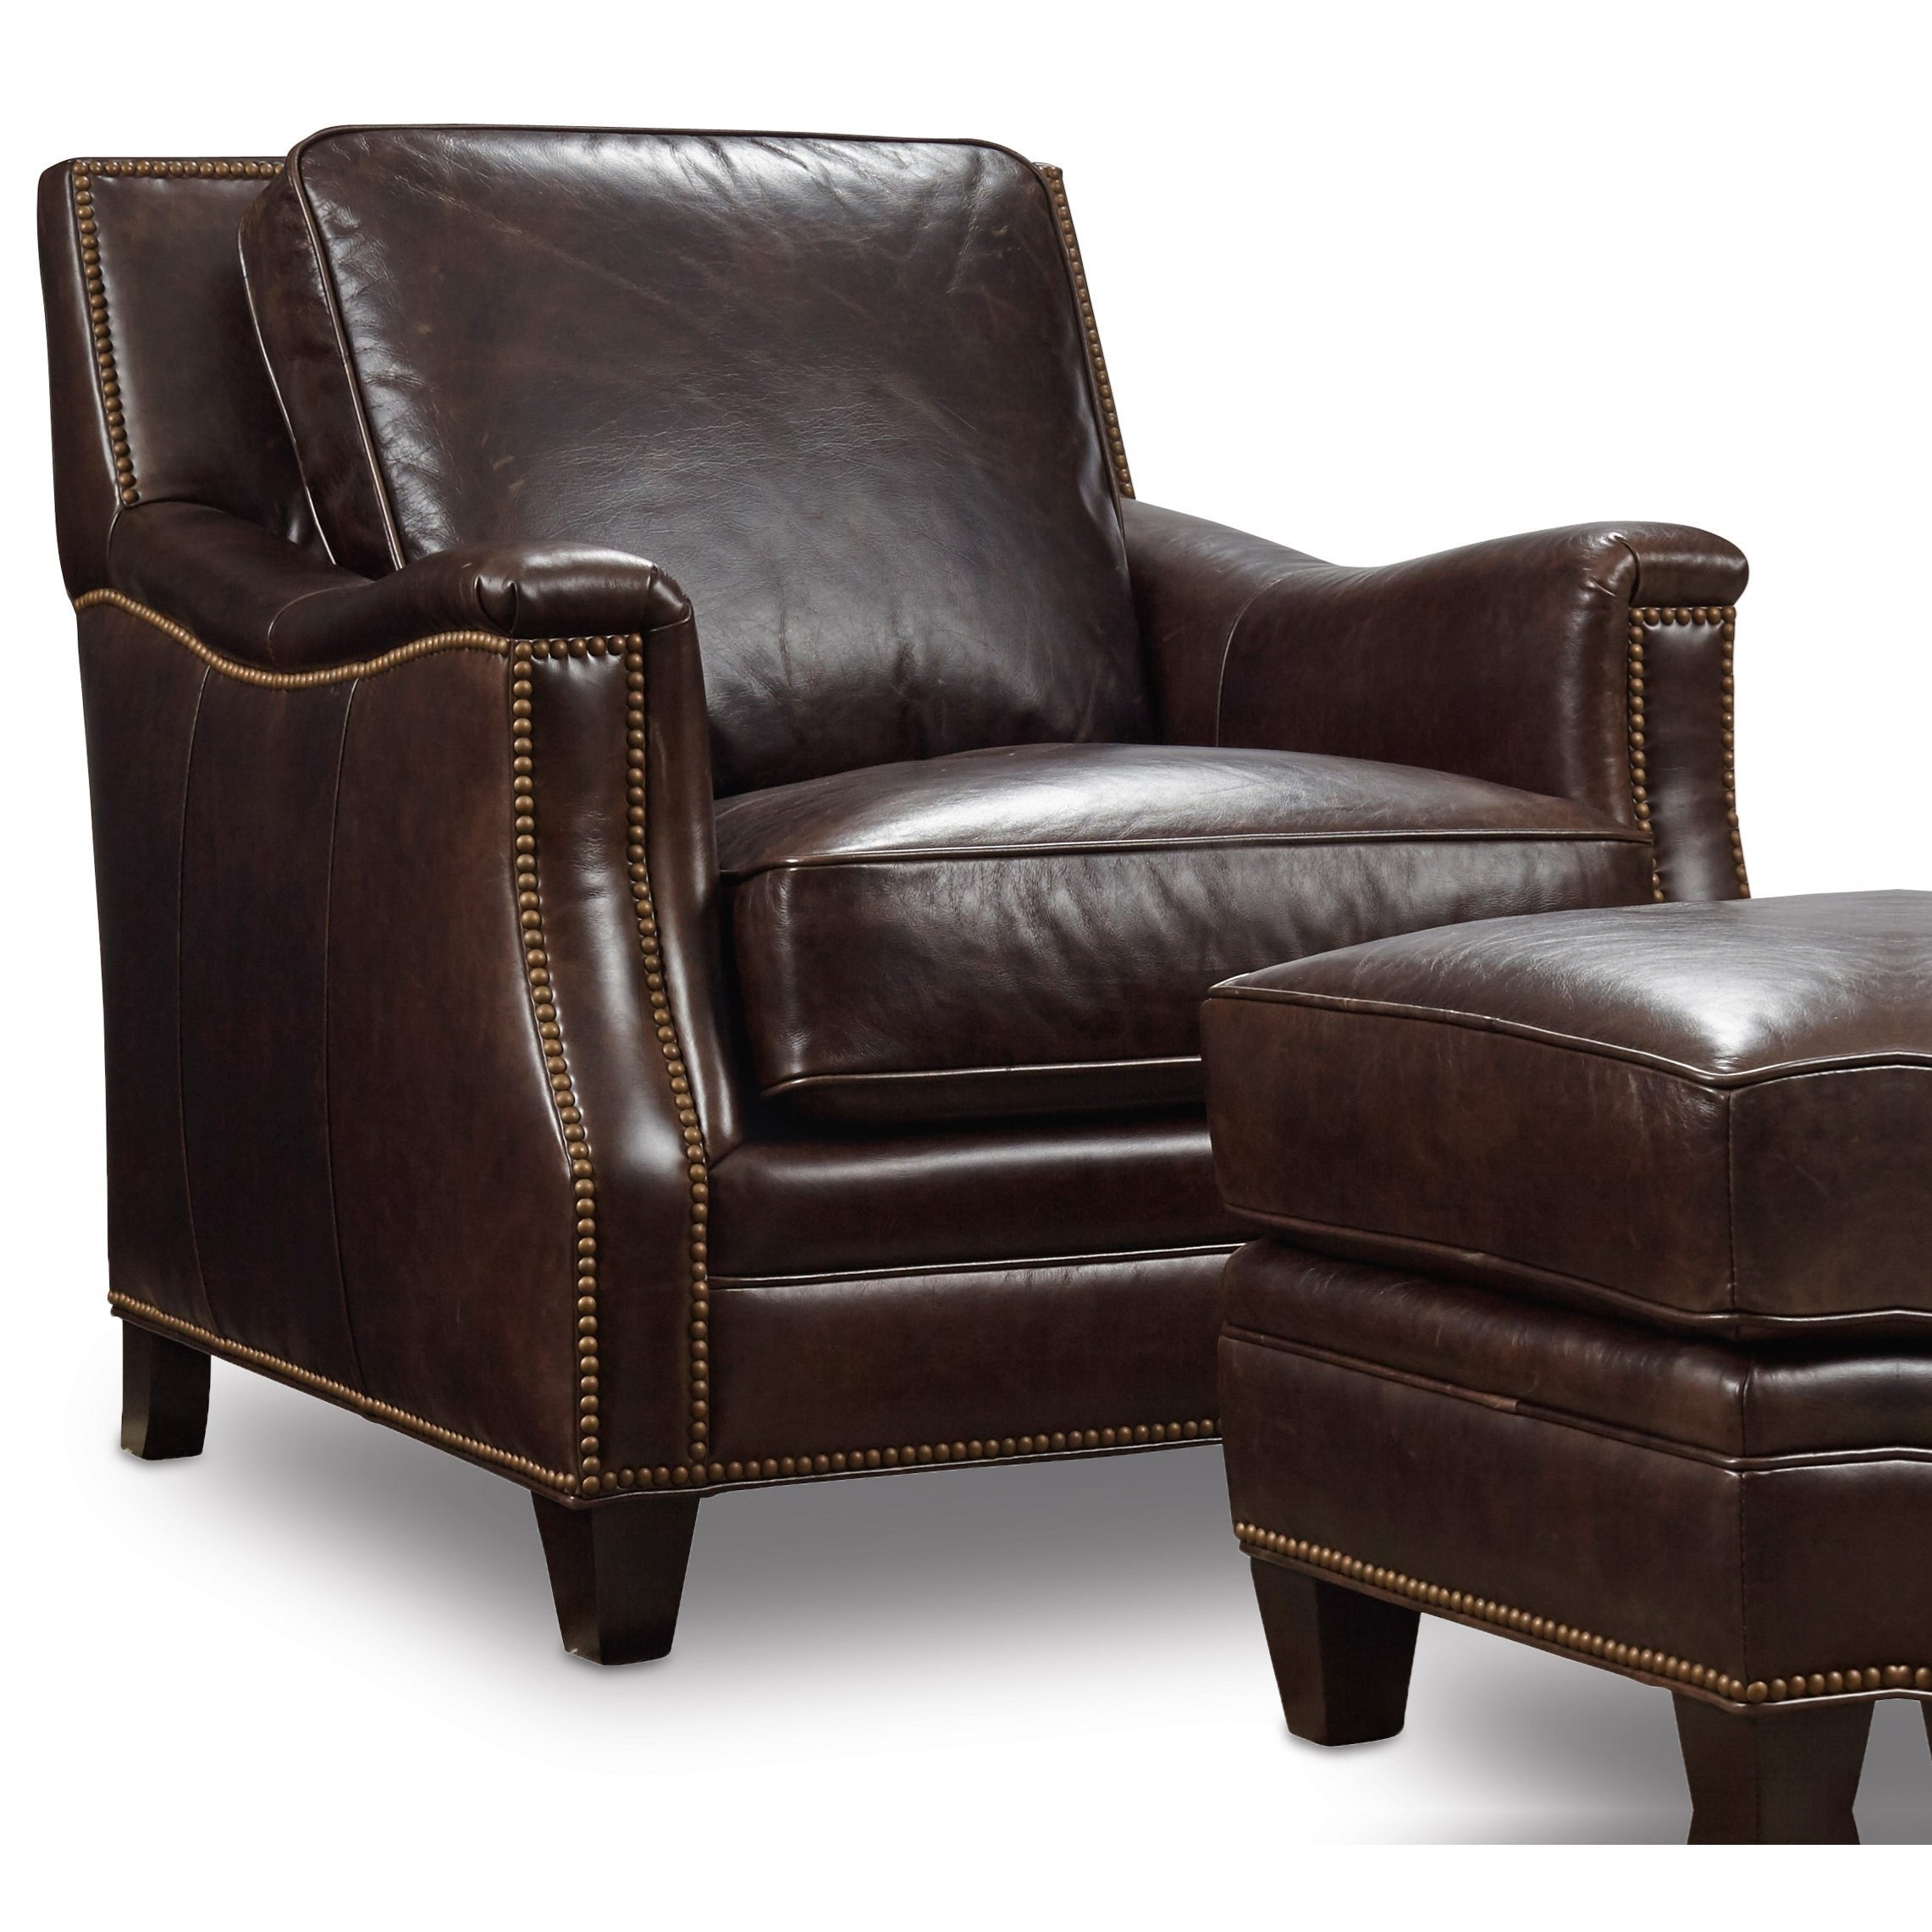 Superbe Hooker Furniture BradshawStationary Leather Chair ...